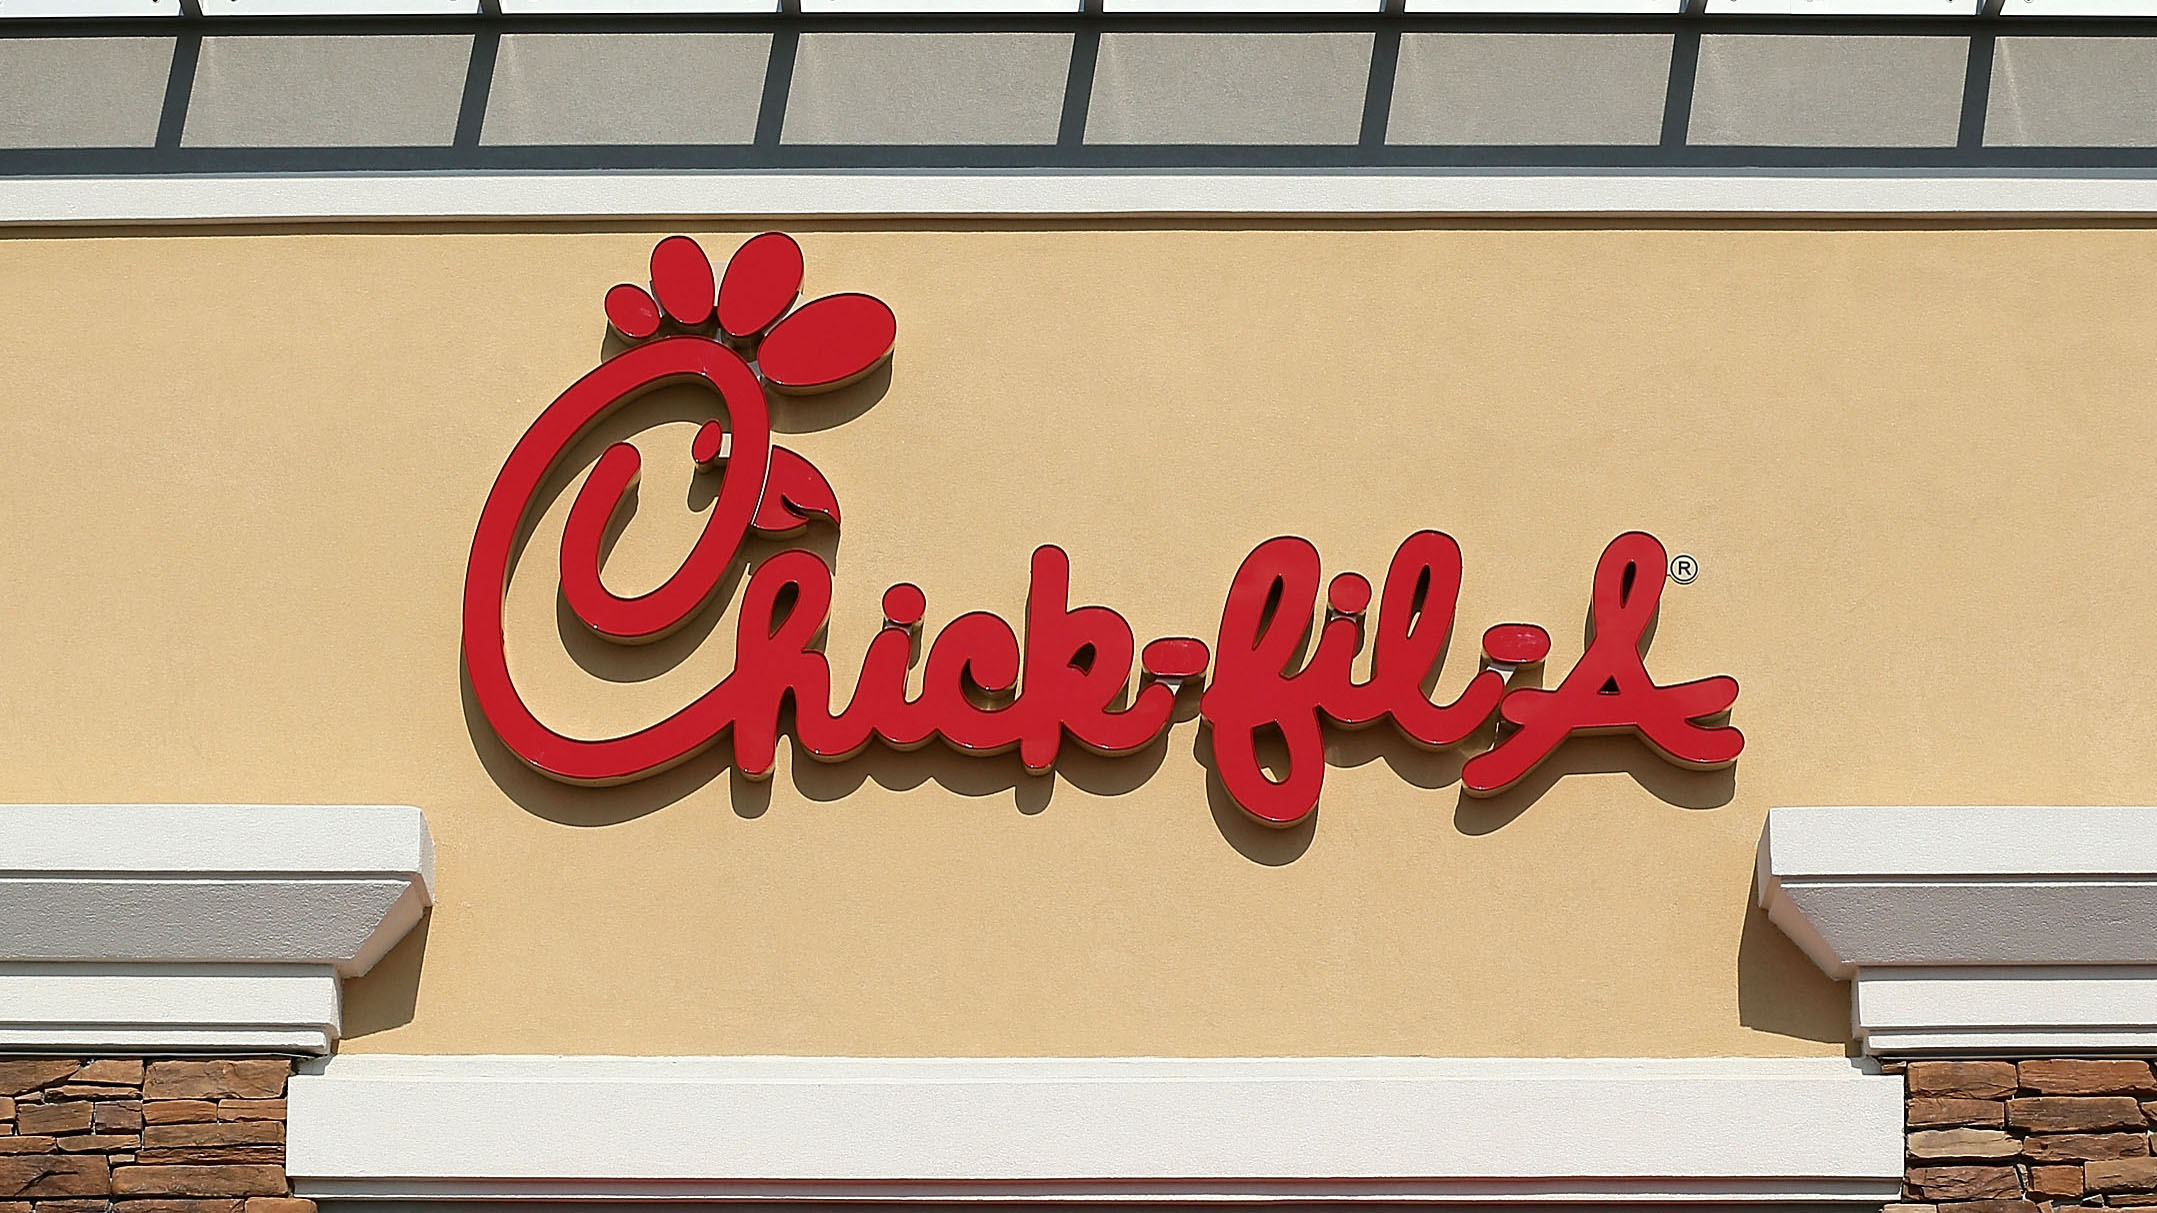 Chick-fil-A getty-54787063